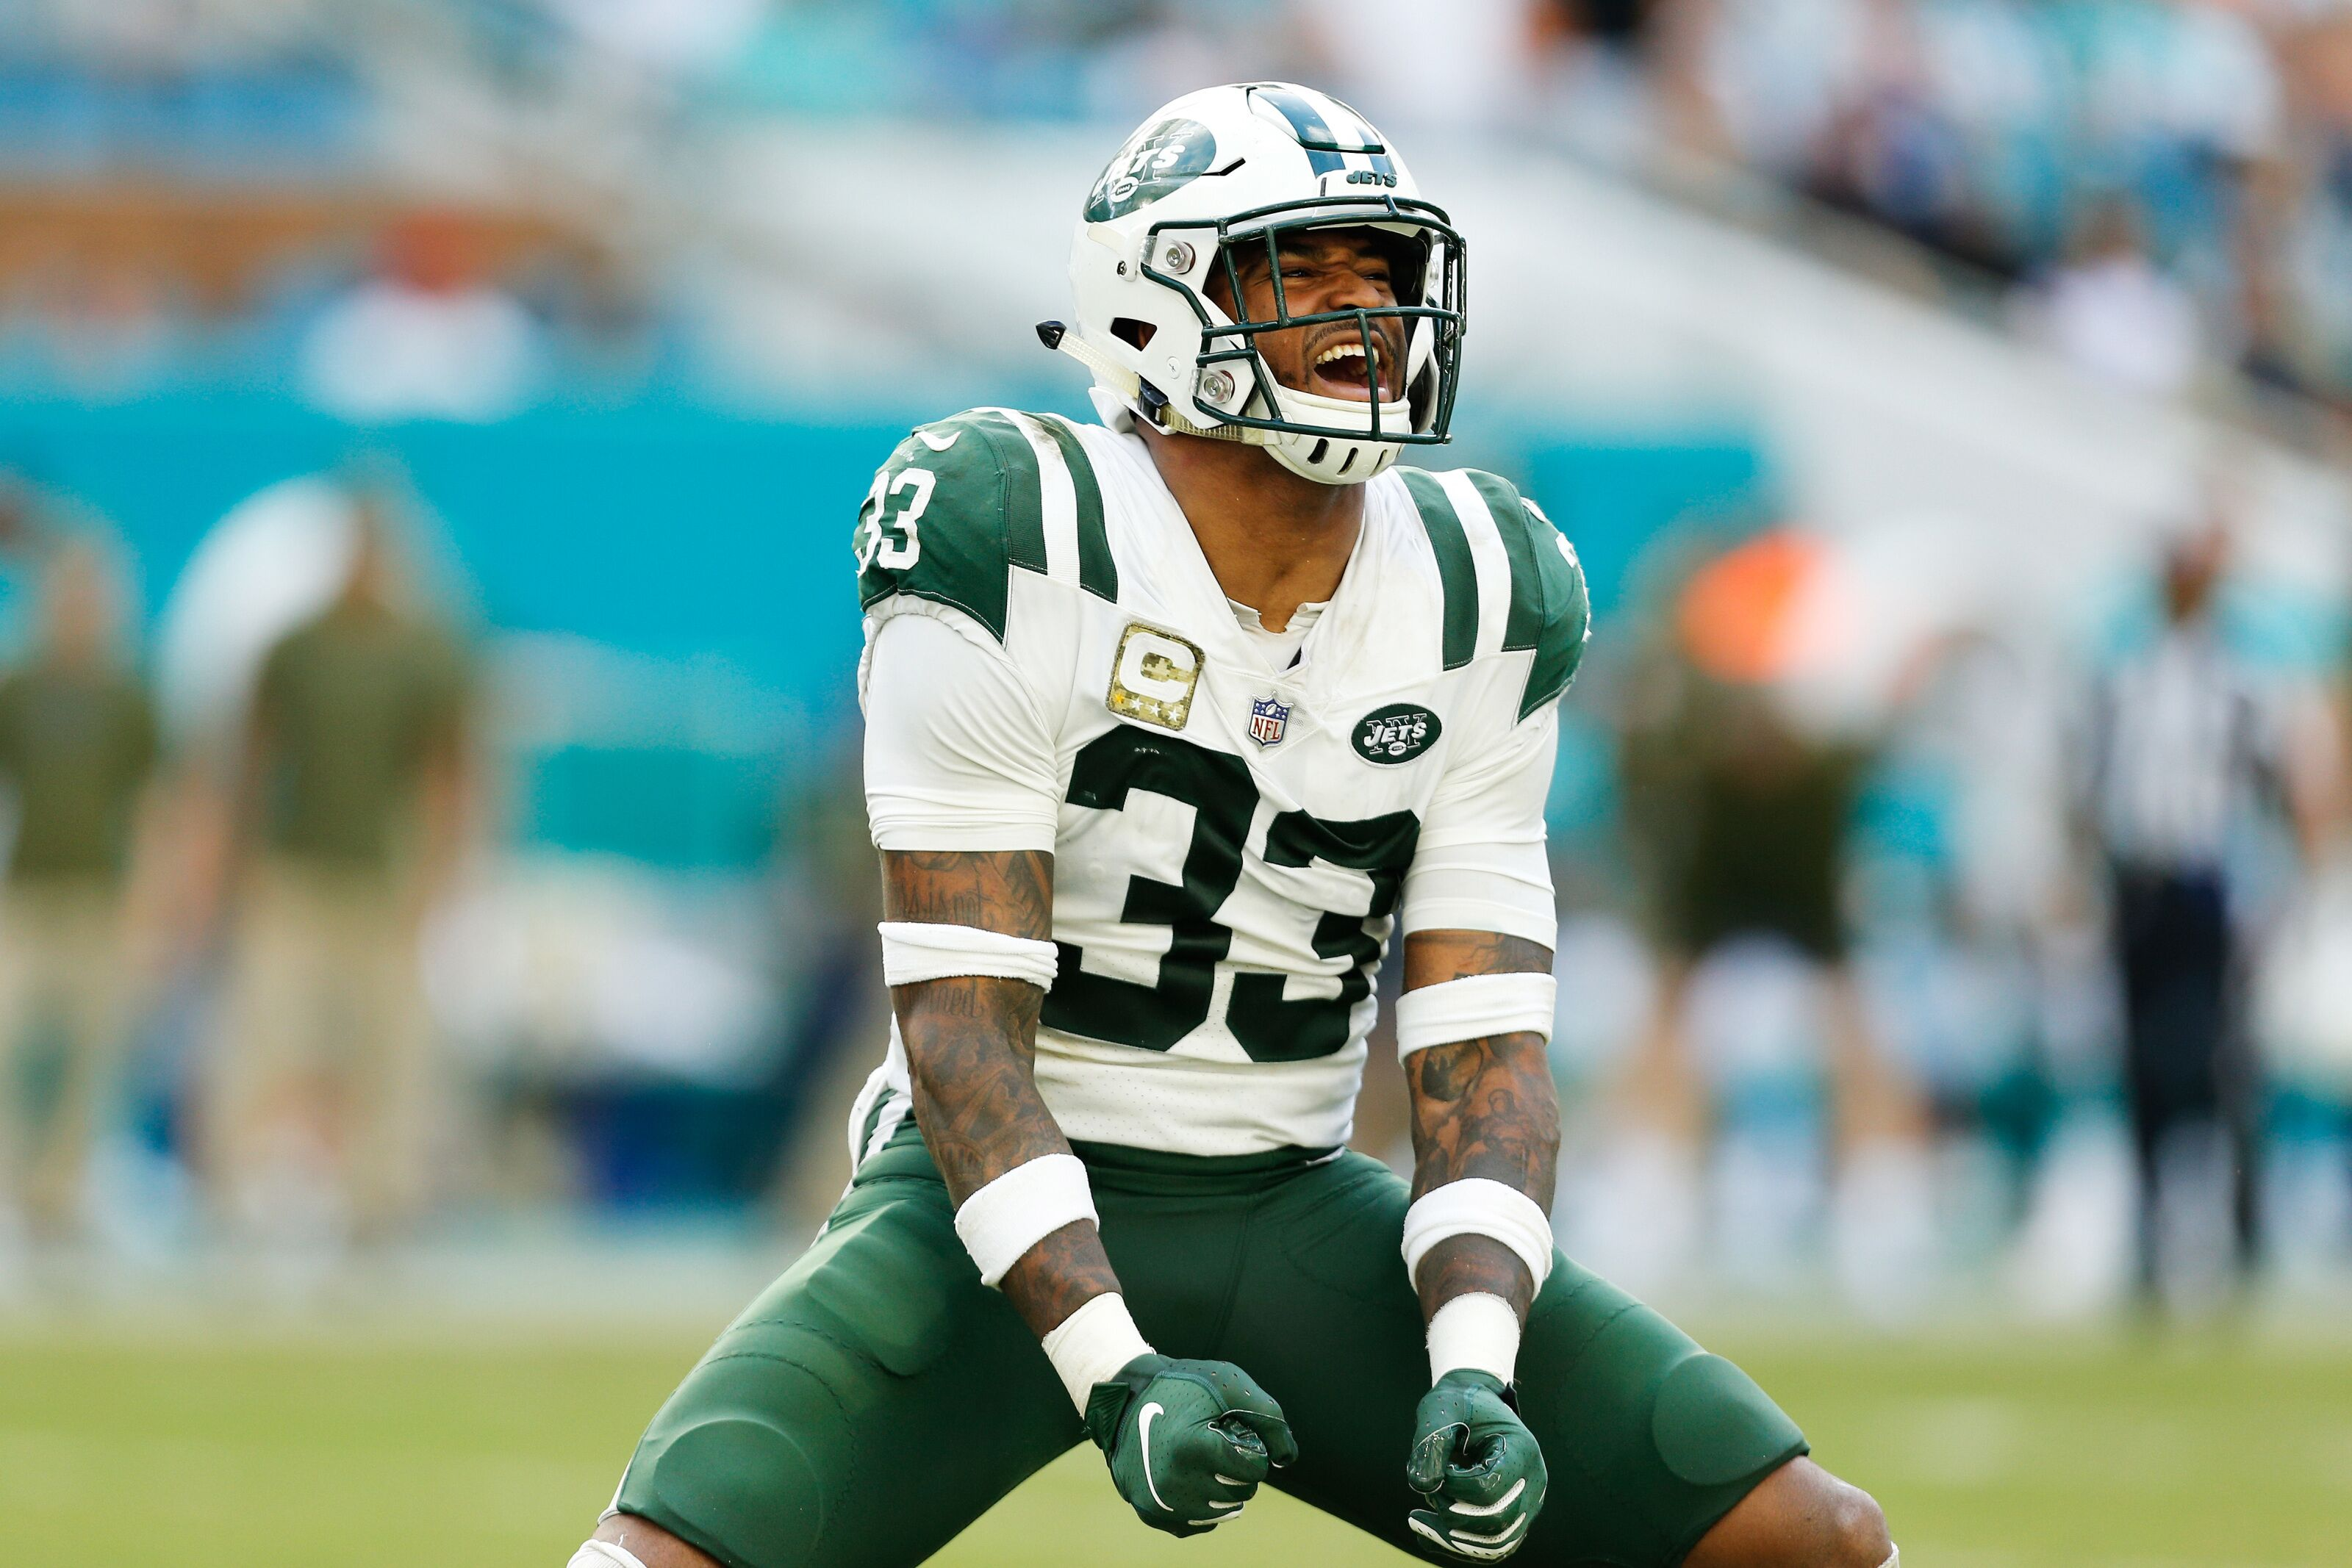 New York Jets: Jamal Adams is right, Todd Bowles isn't all of Jets' problems